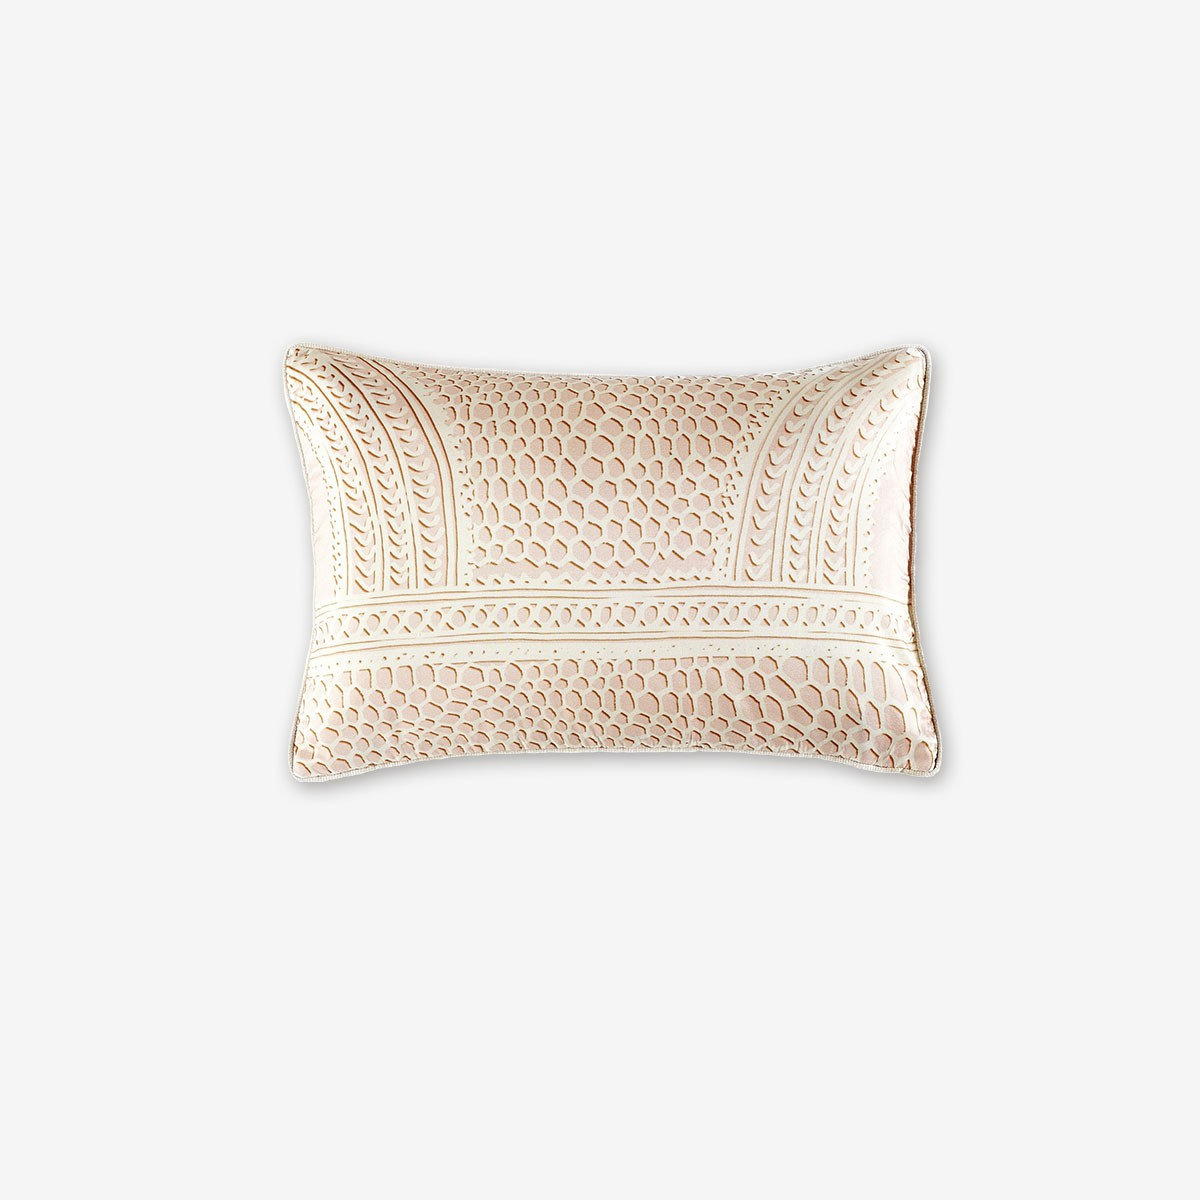 Image shows Bridget Cushion in Peony